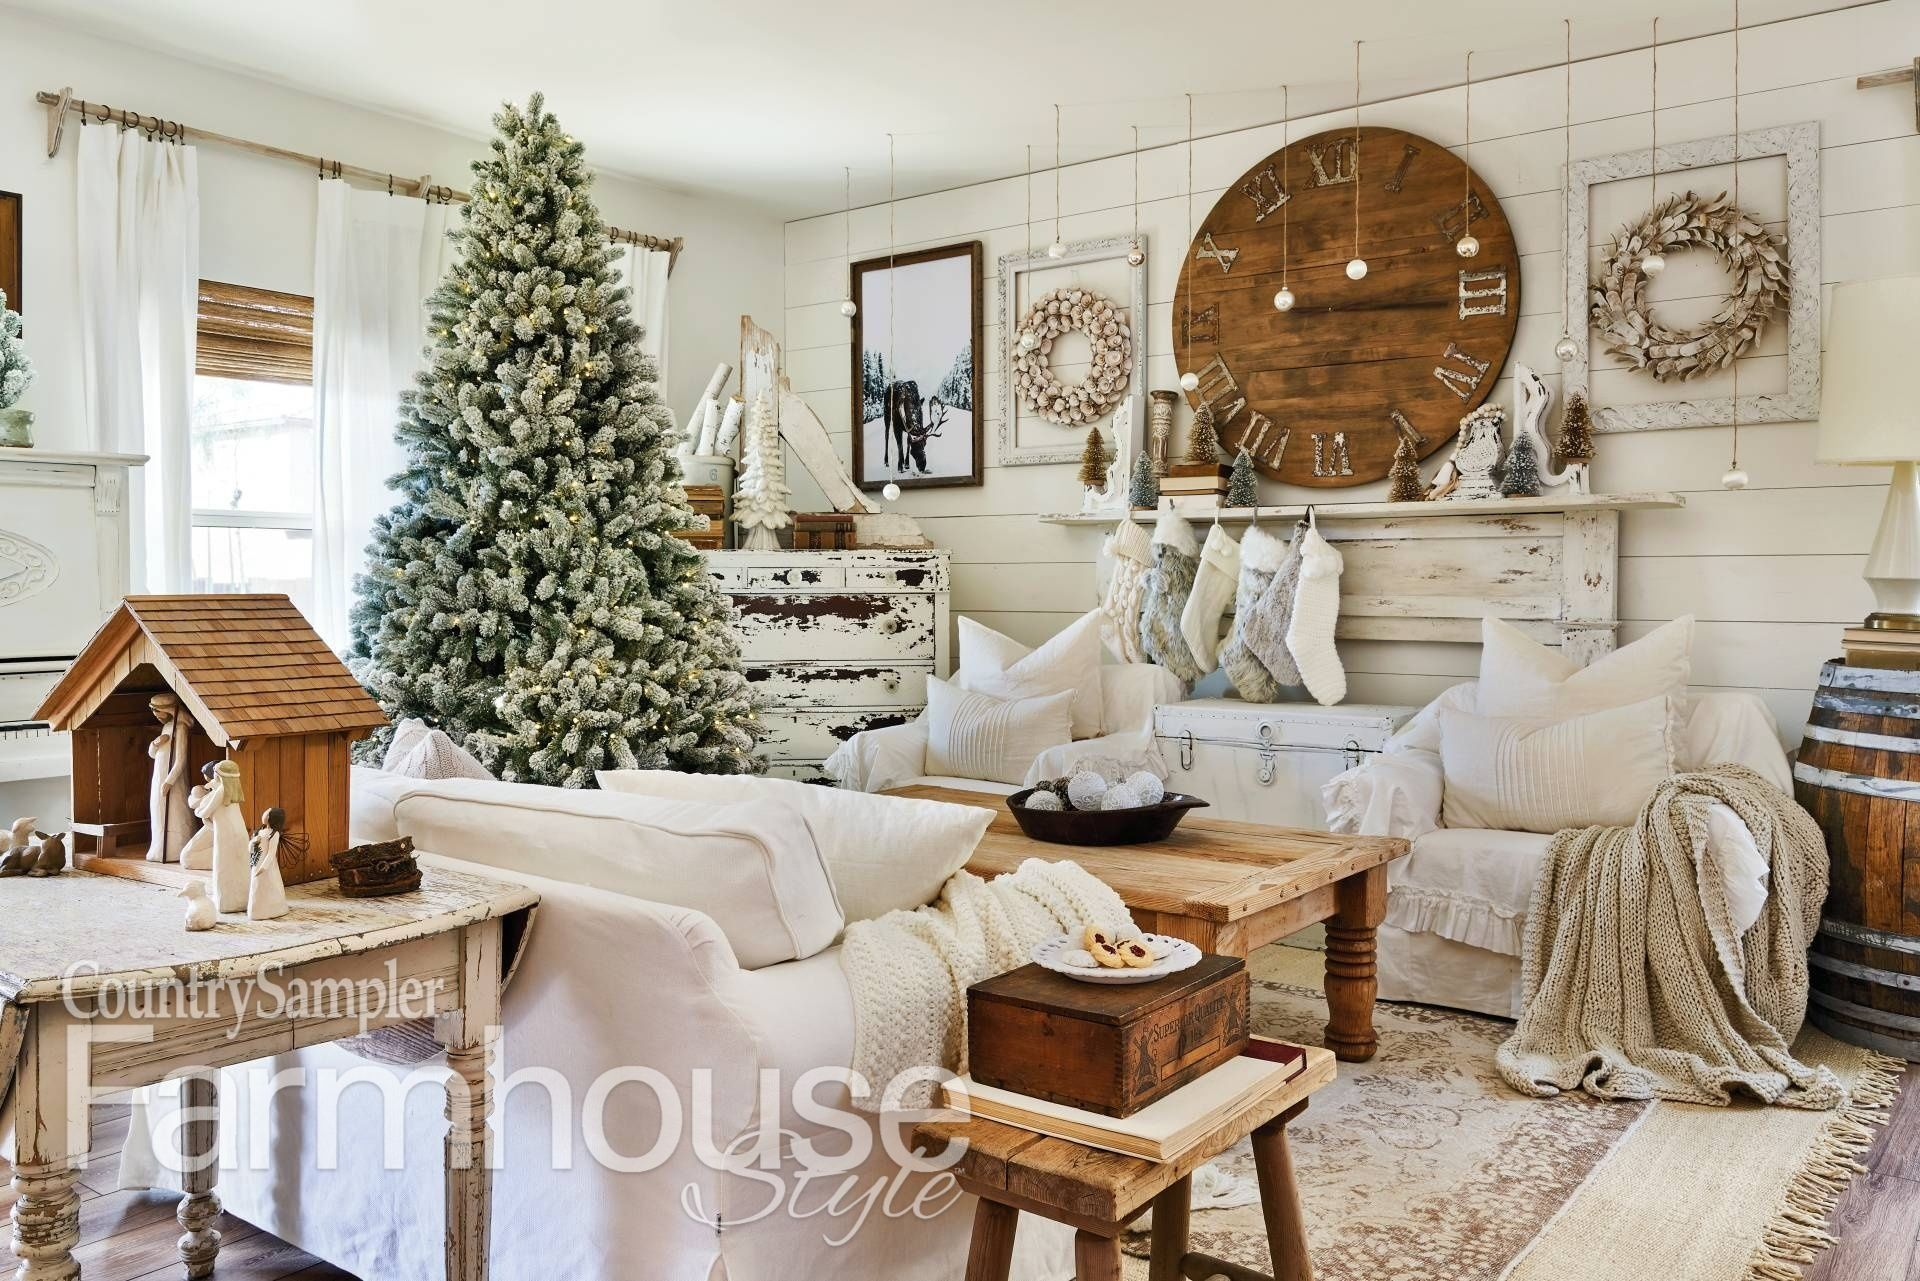 Have A Country Christmas Inspired By Country Sampler Farmhouse